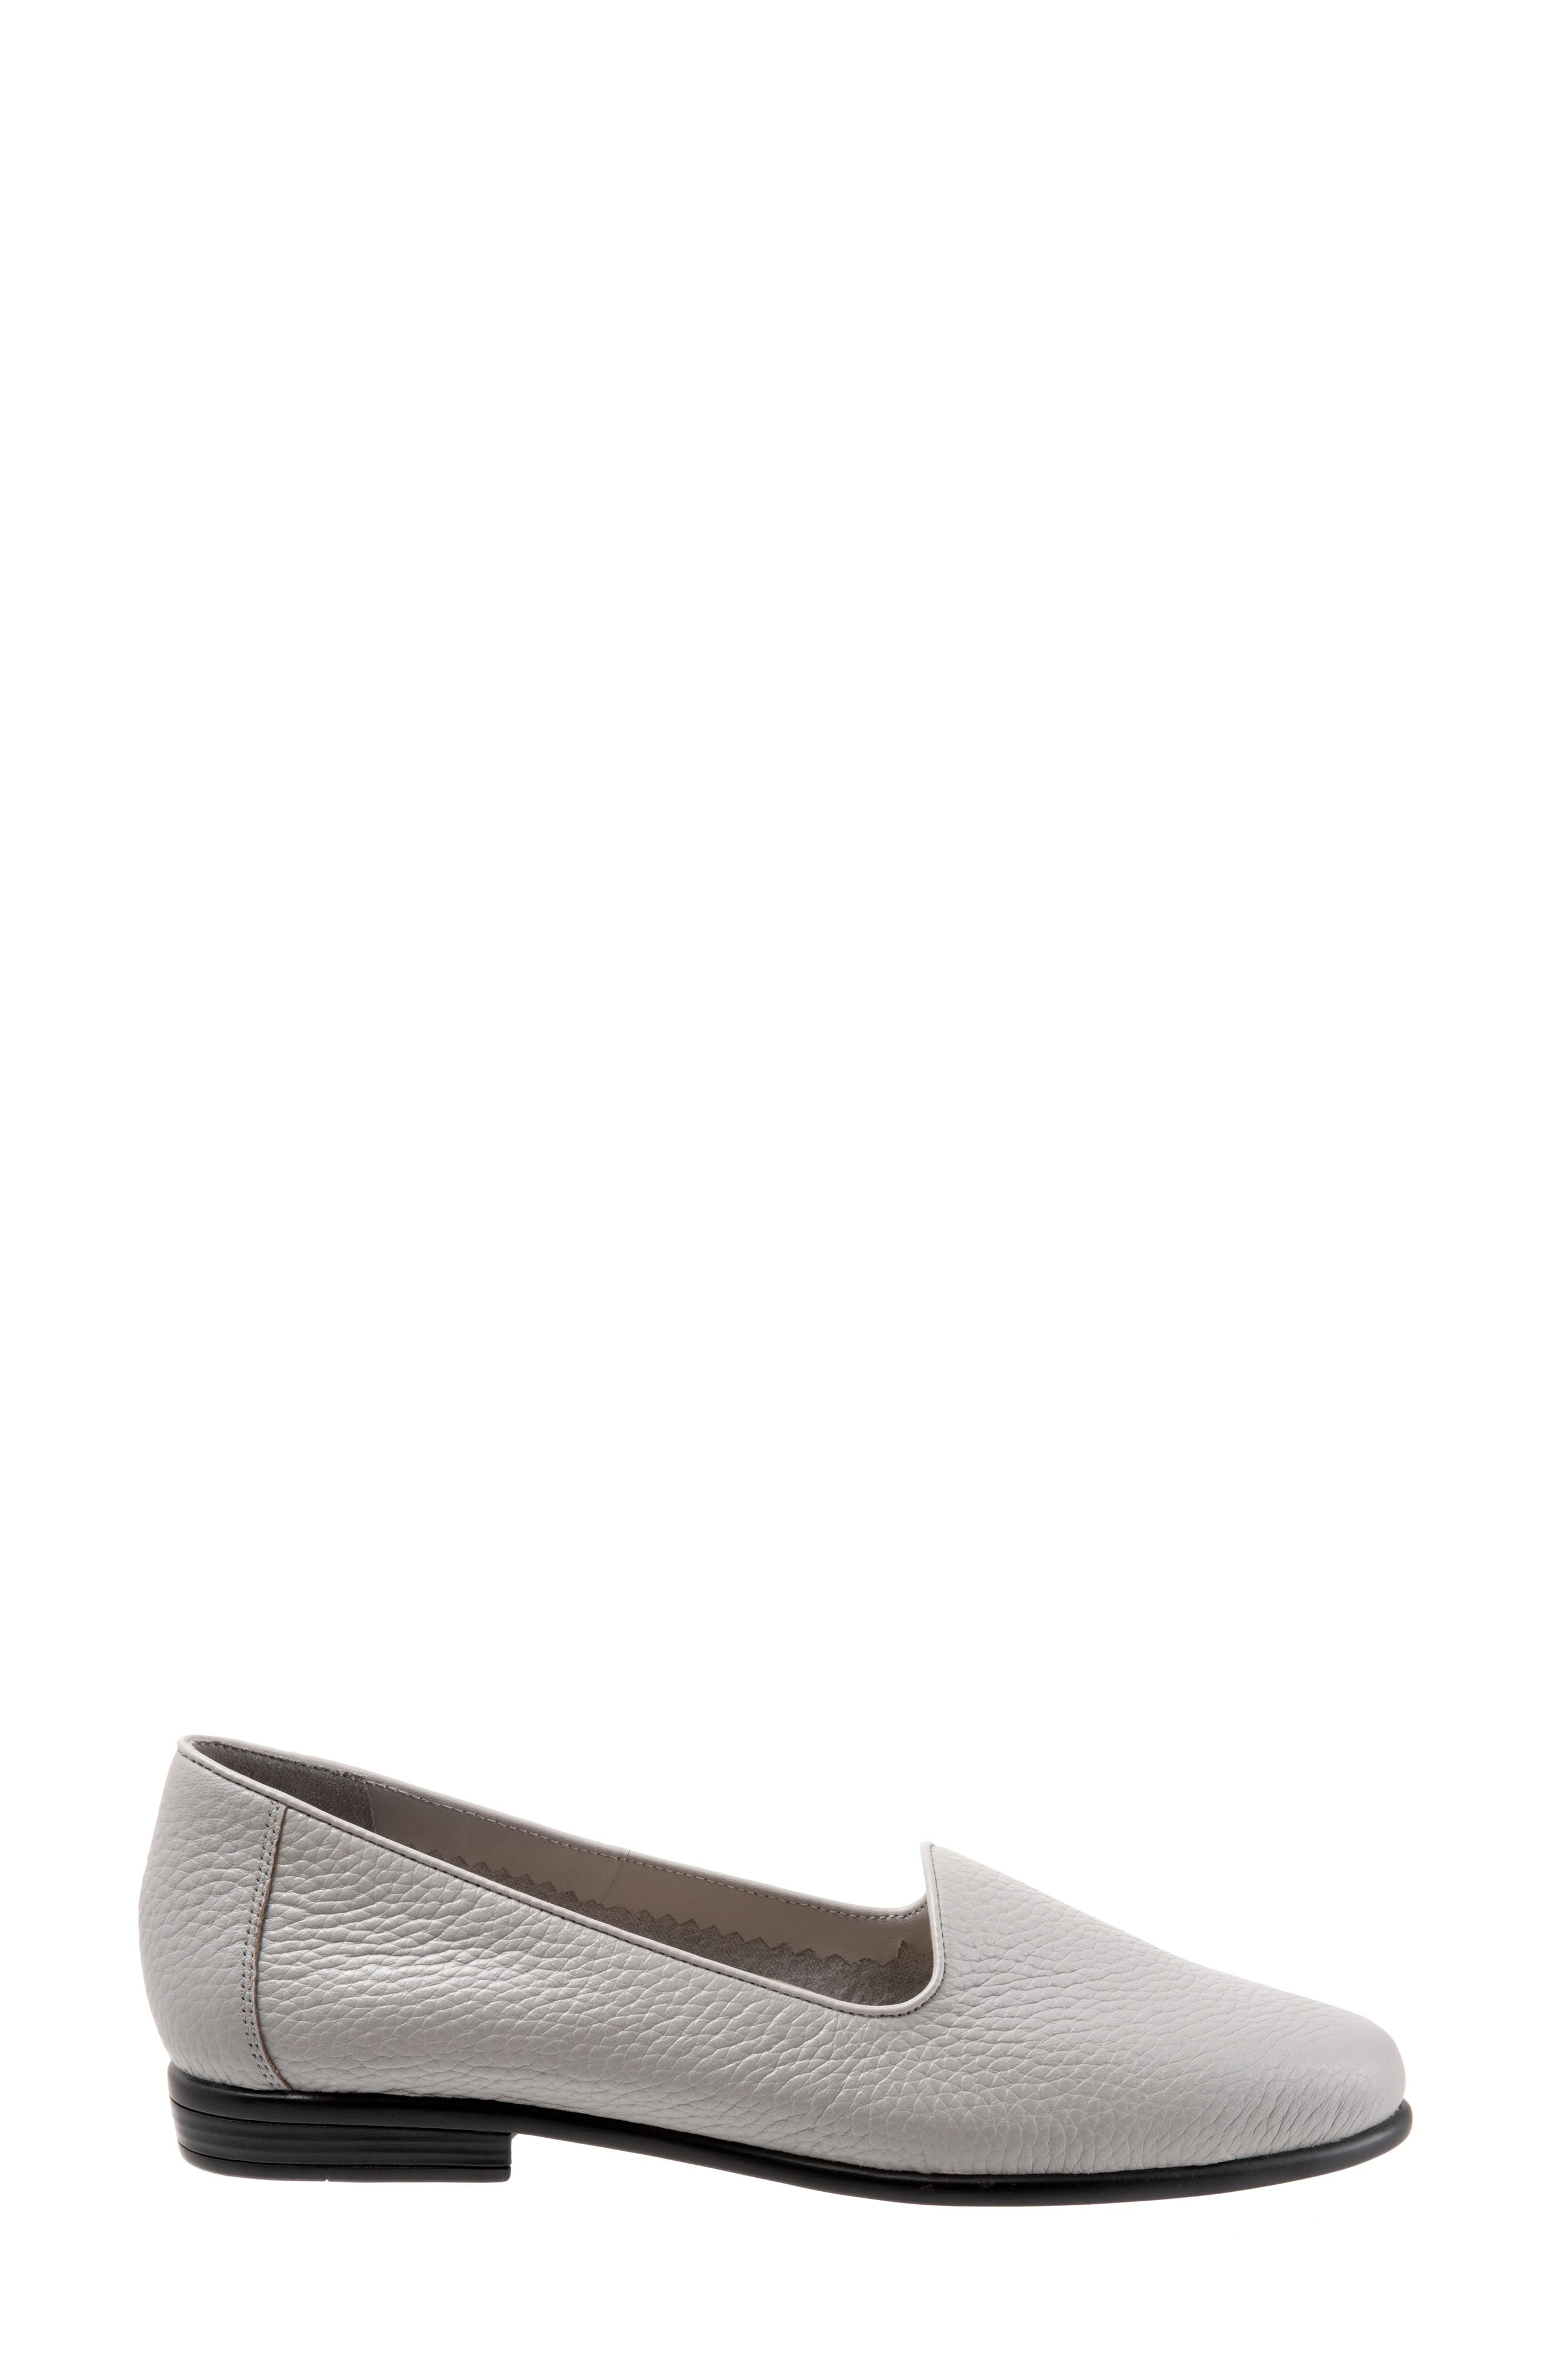 TROTTERS,                             Liz Loafer,                             Alternate thumbnail 3, color,                             GREY LEATHER